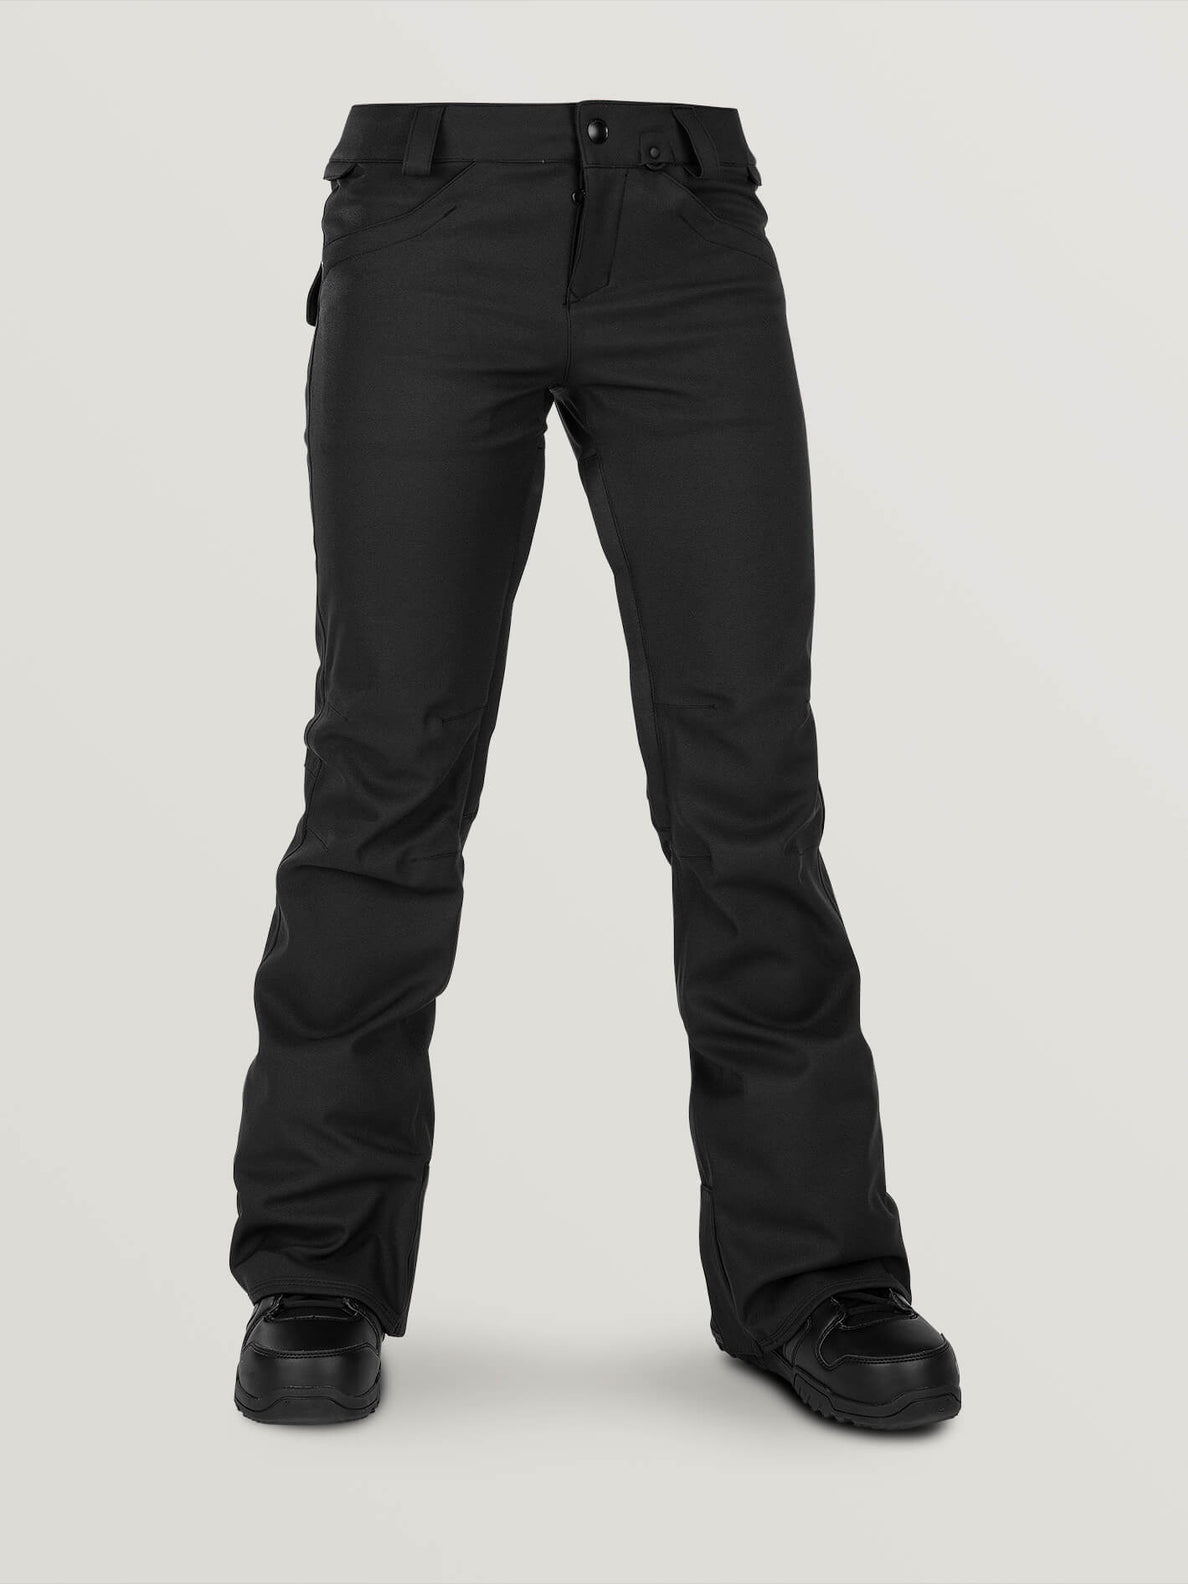 WOMENS SPECIES STRETCH PANTS - BLACK (H1351905_BLK) [F]